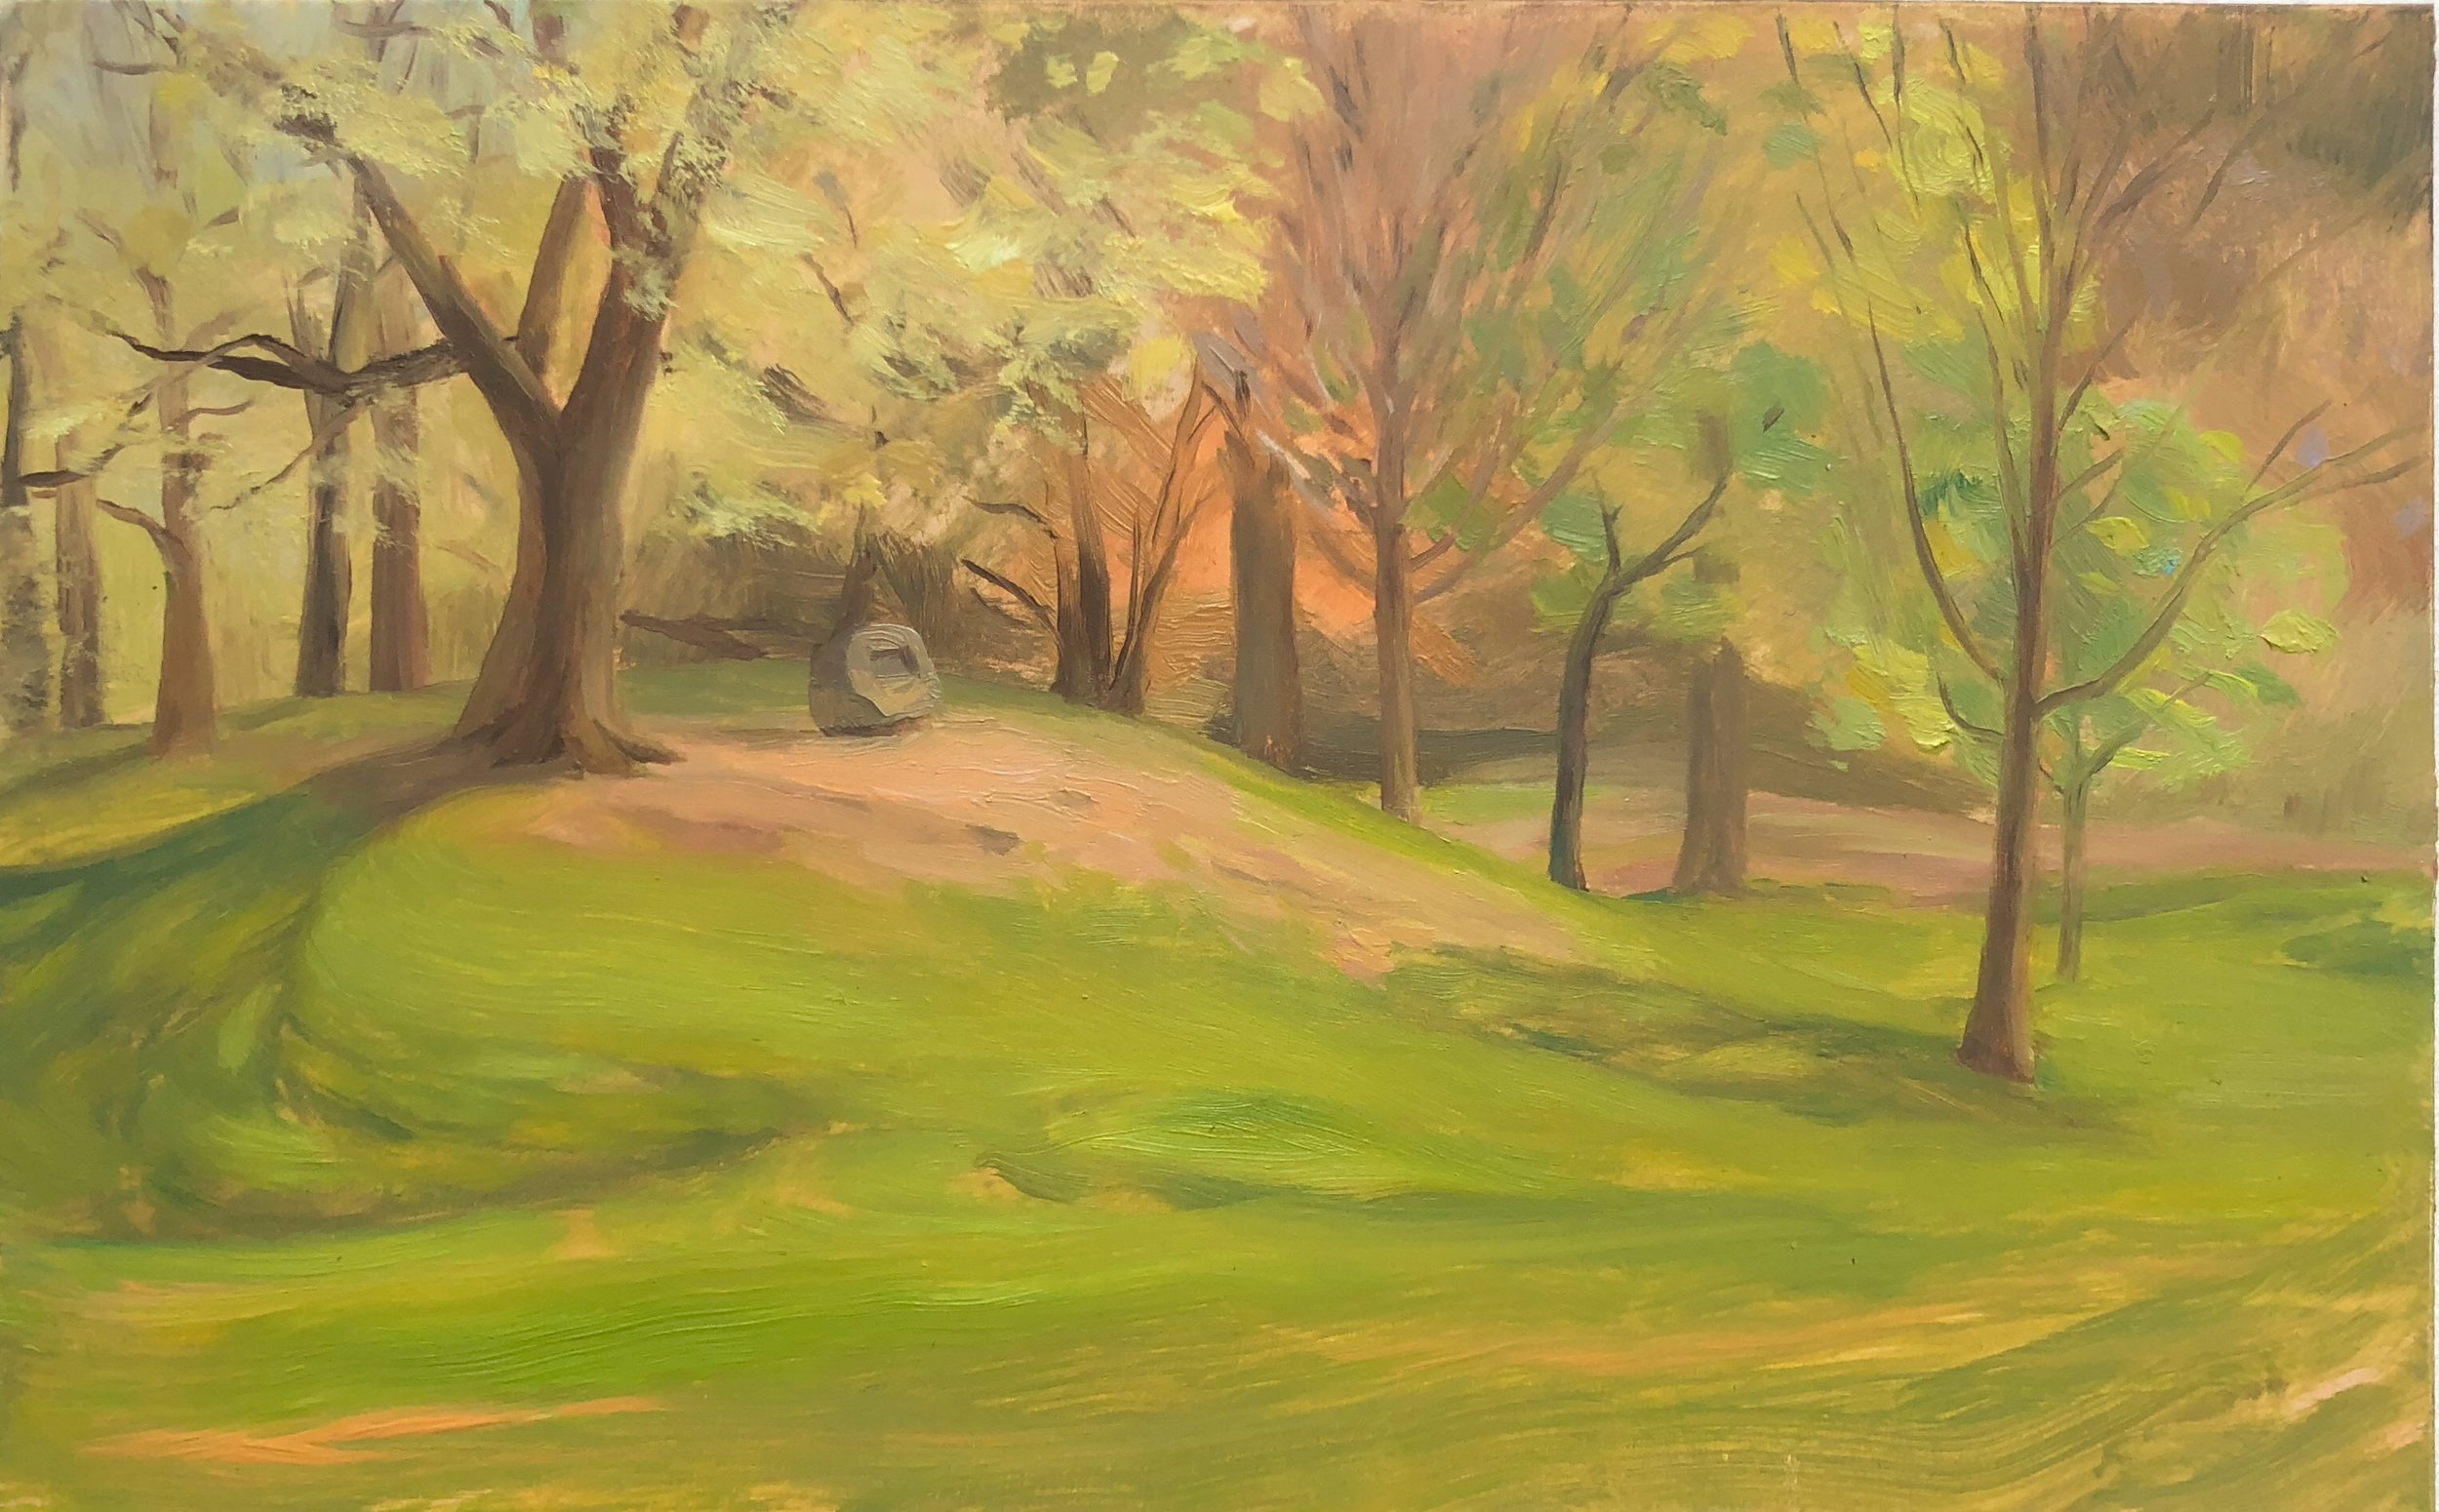 Prospect Park #2 Oil on panel 5 by 8 inches 2018